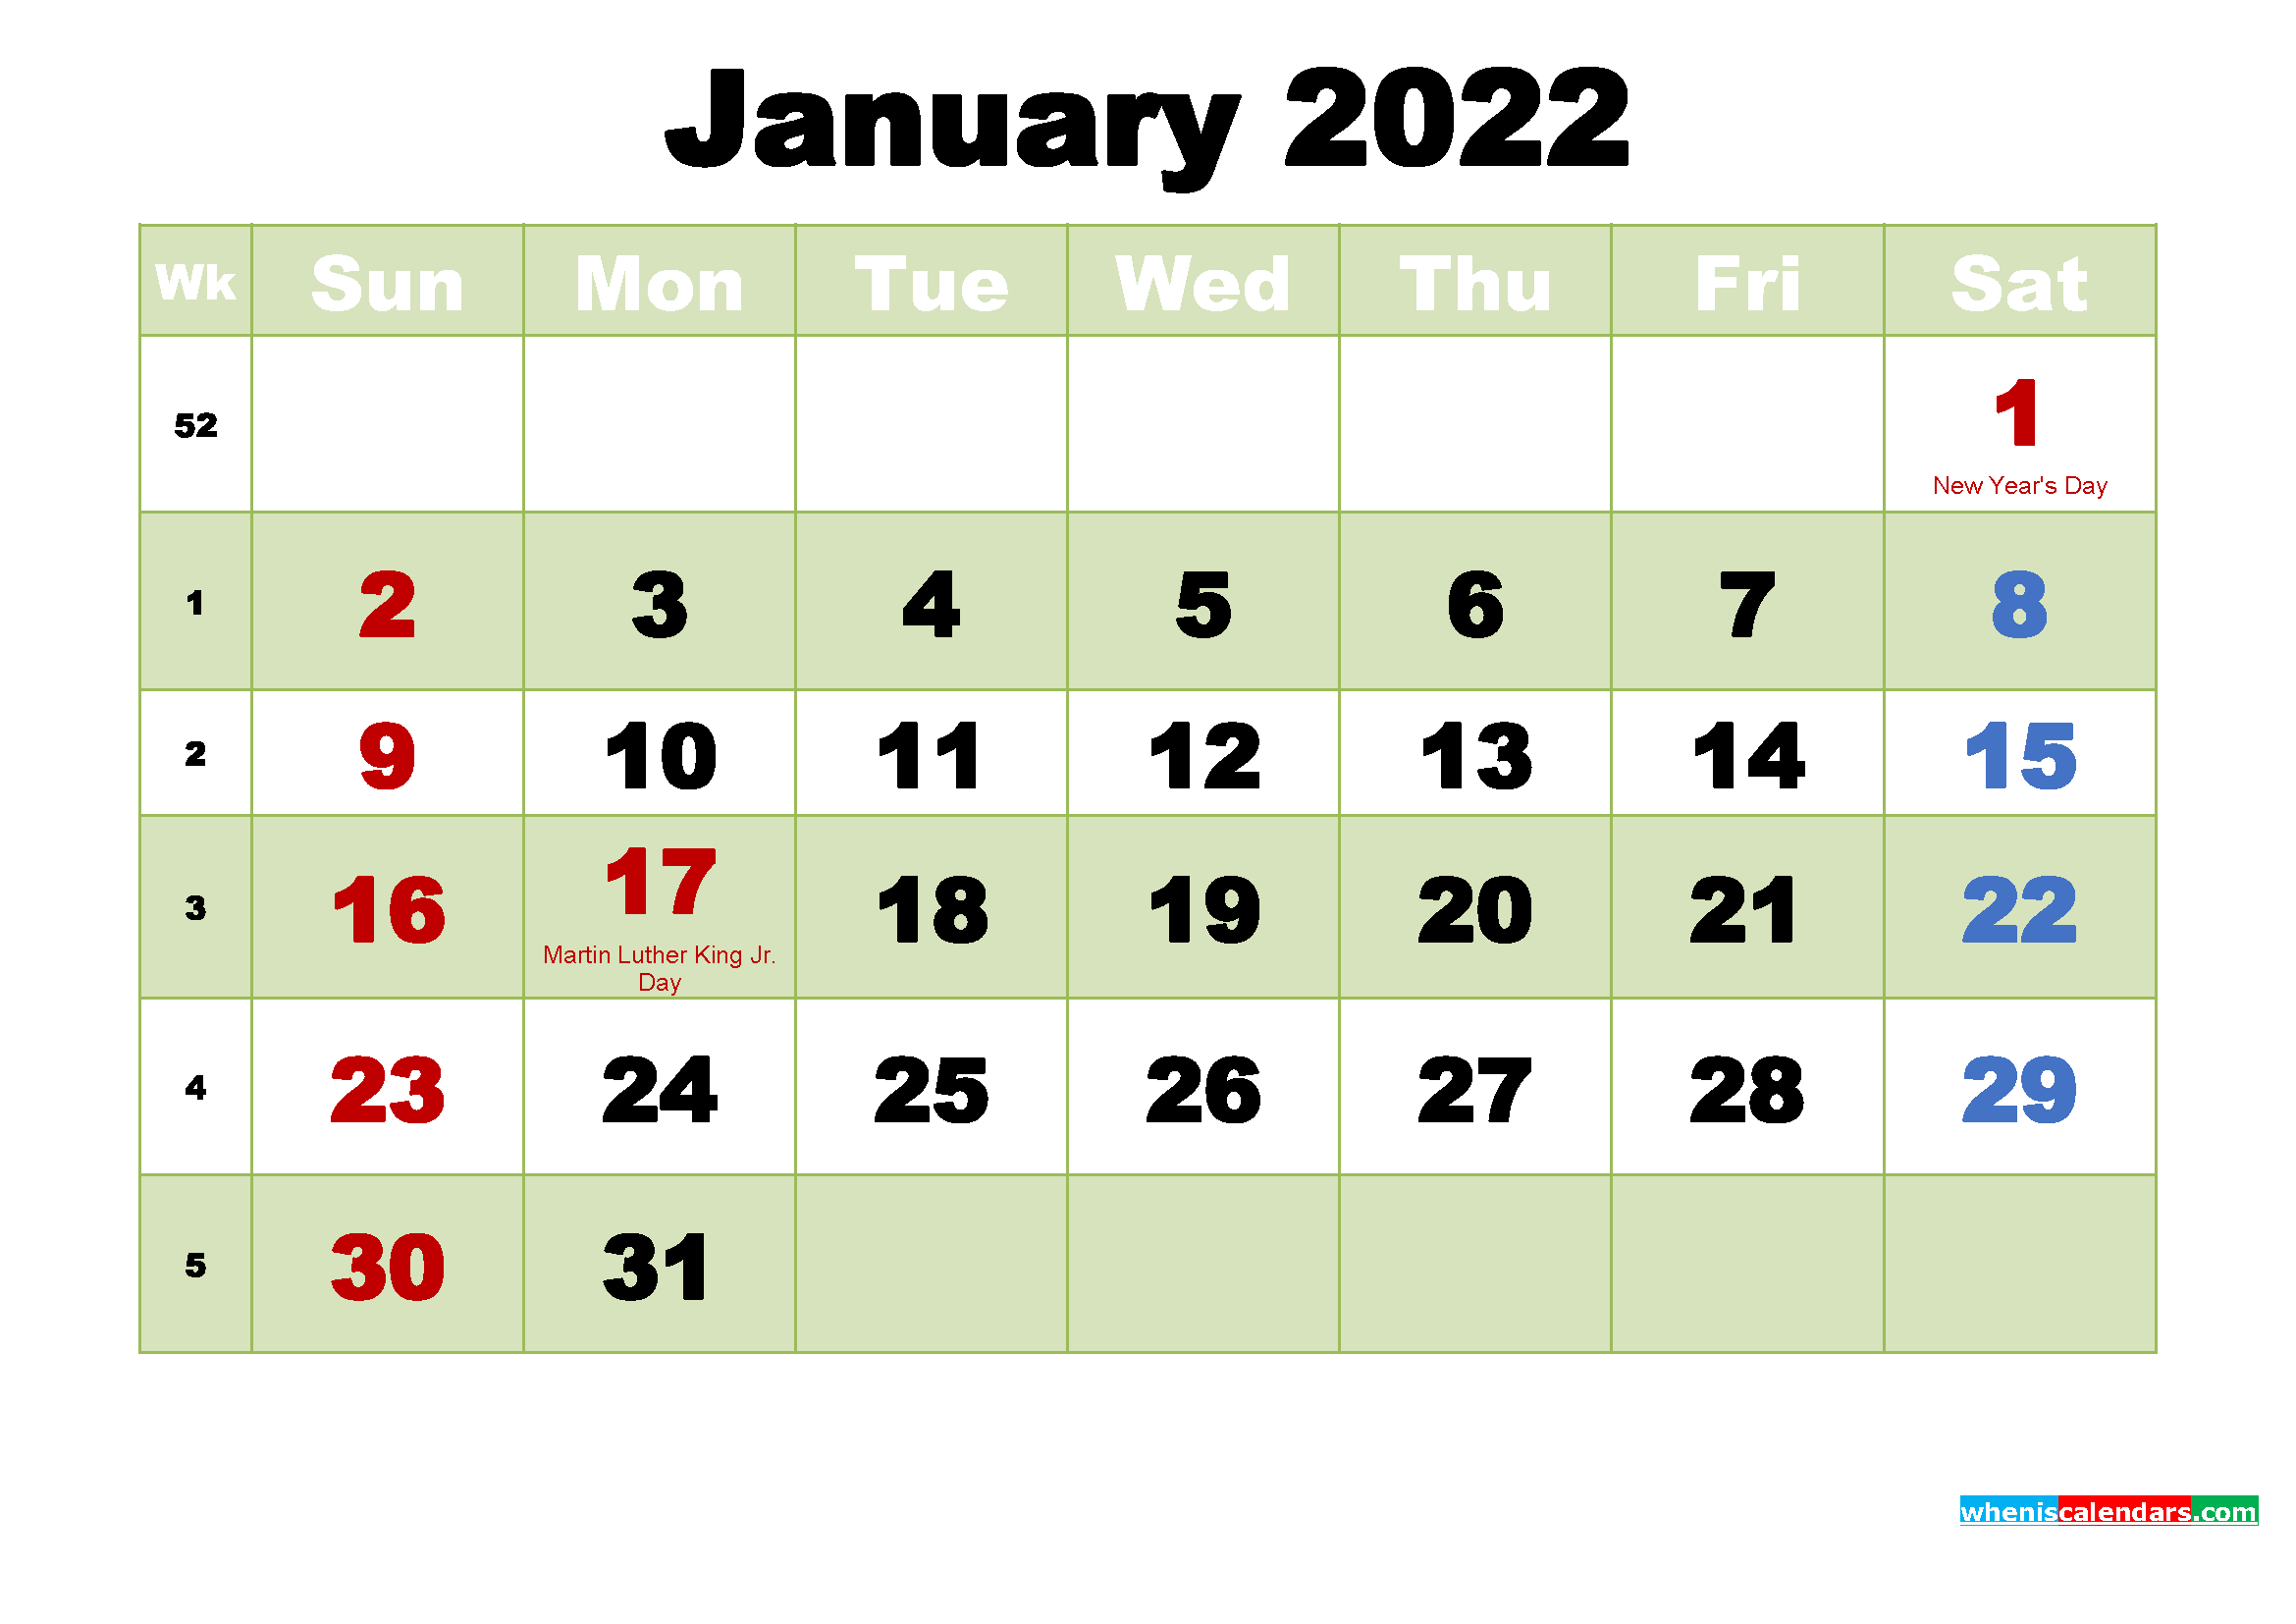 Free January 2022 Printable Calendar Template Word, PDF